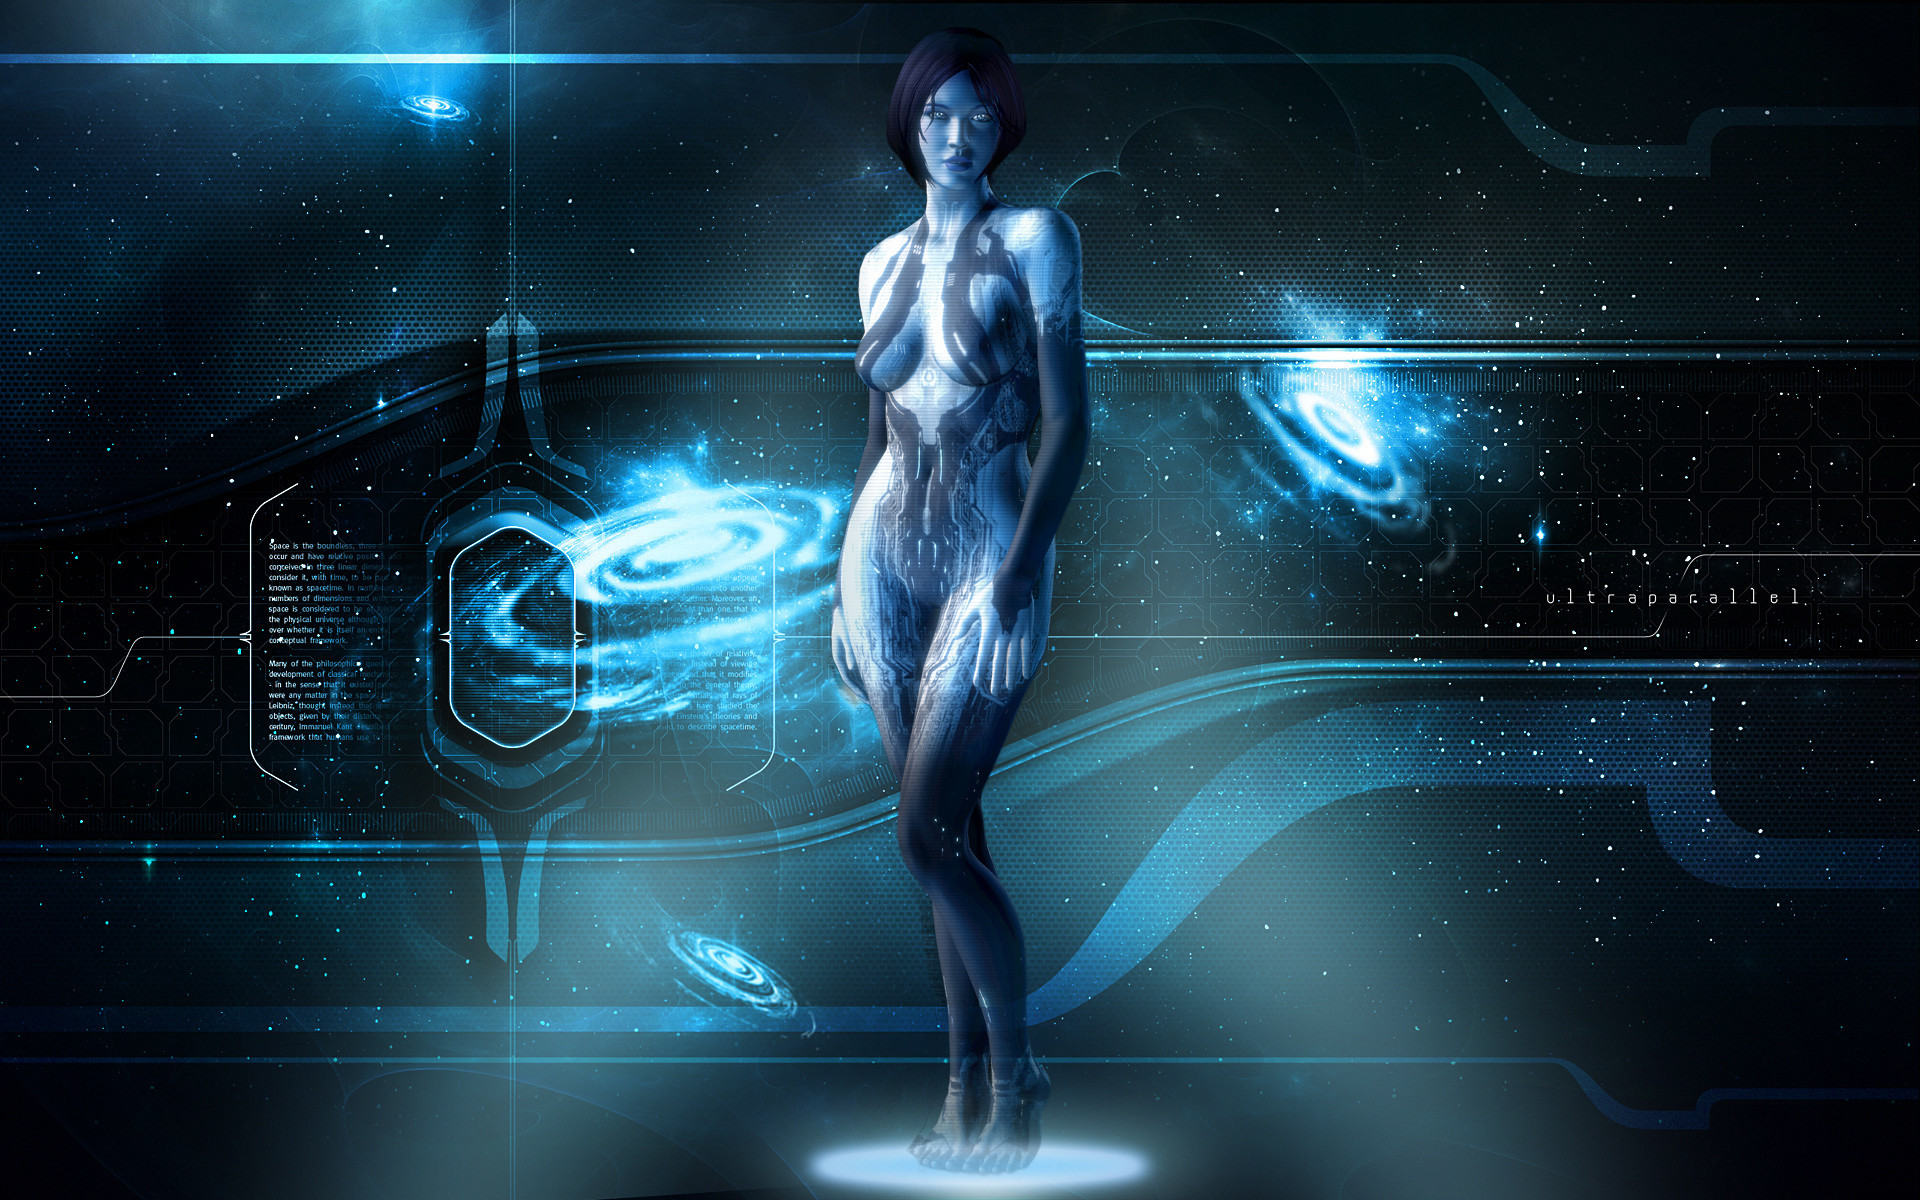 Cortana Animated Wallpaper Windows 10 71 Images